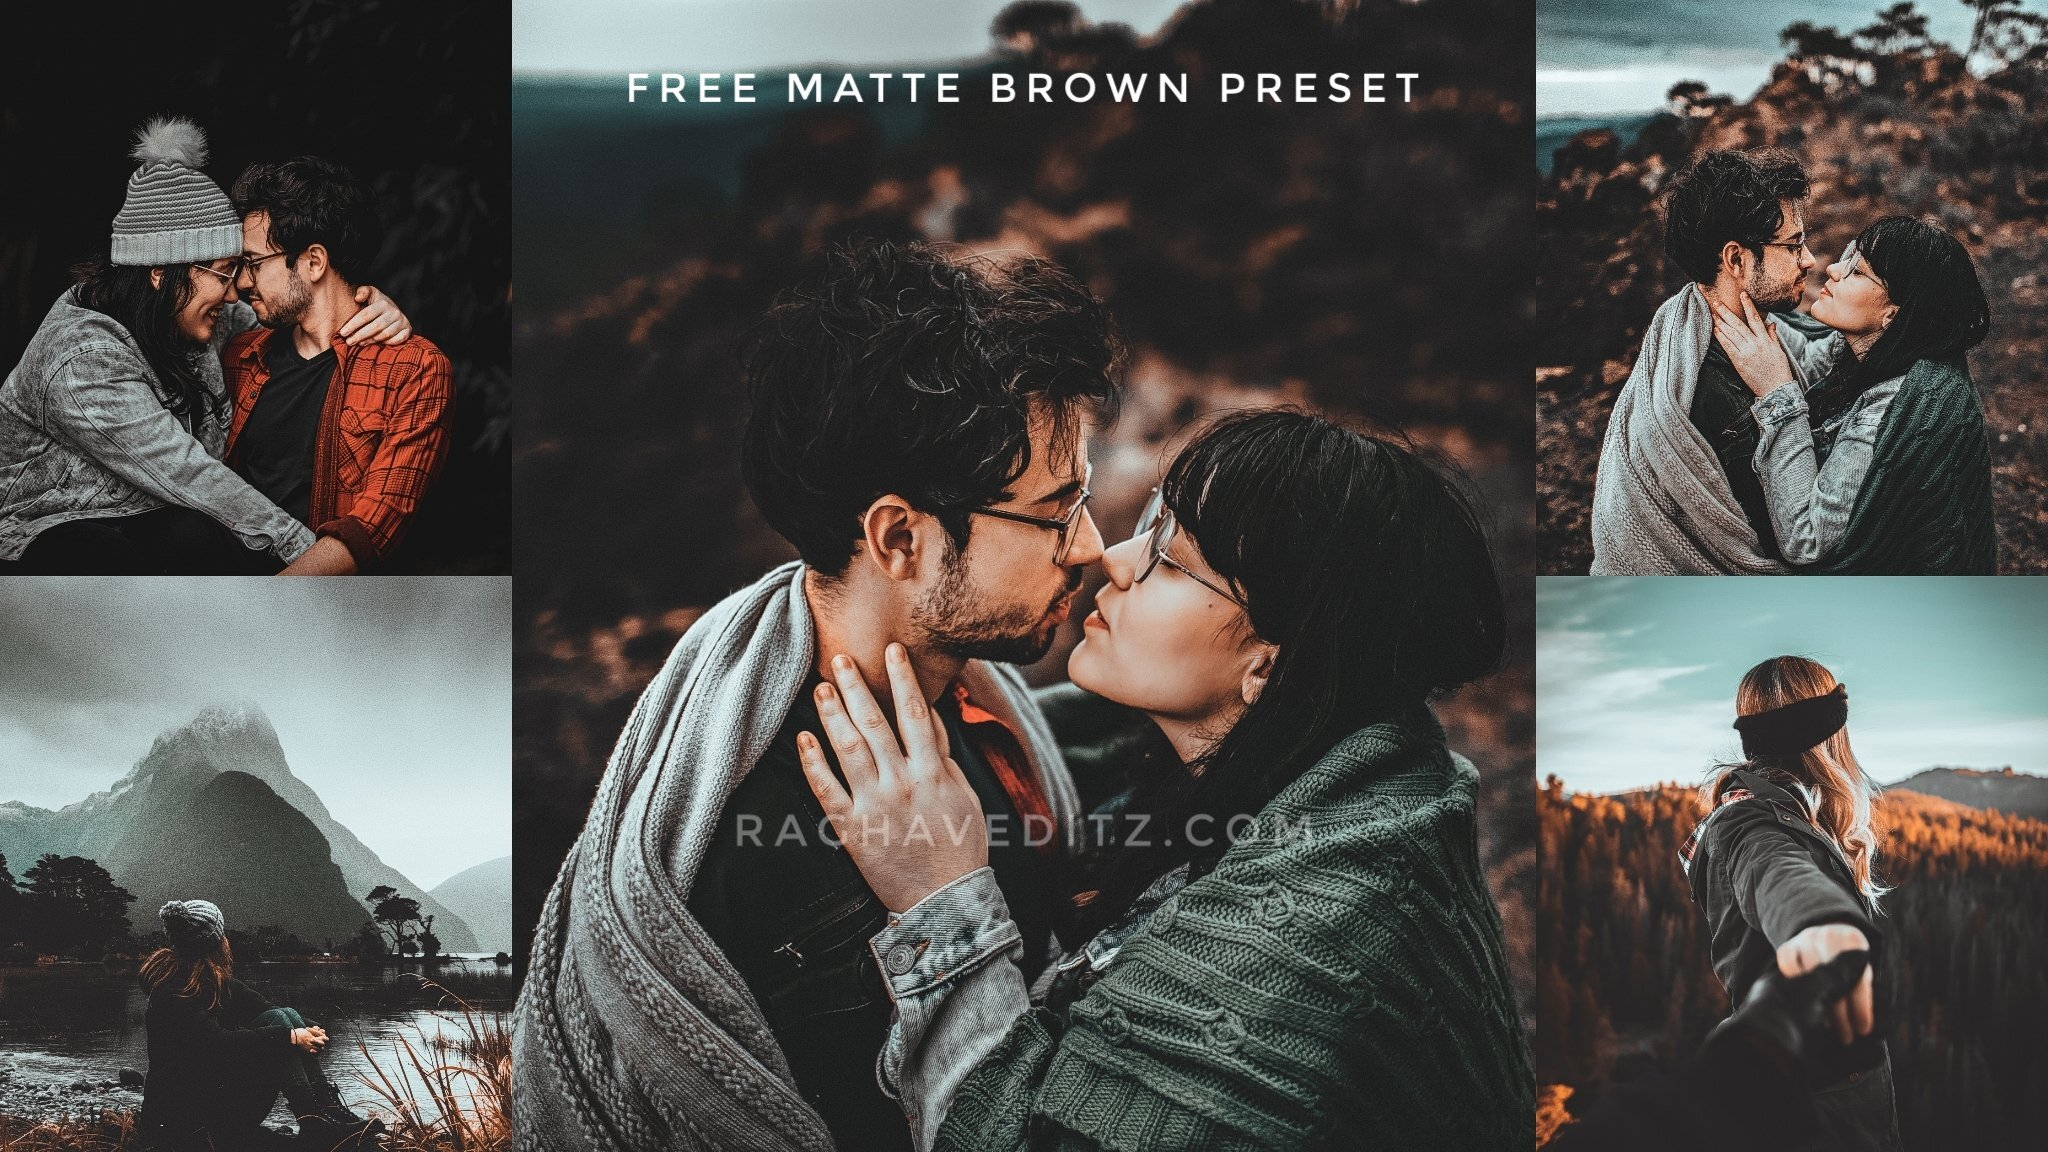 matte brown preset.jpg